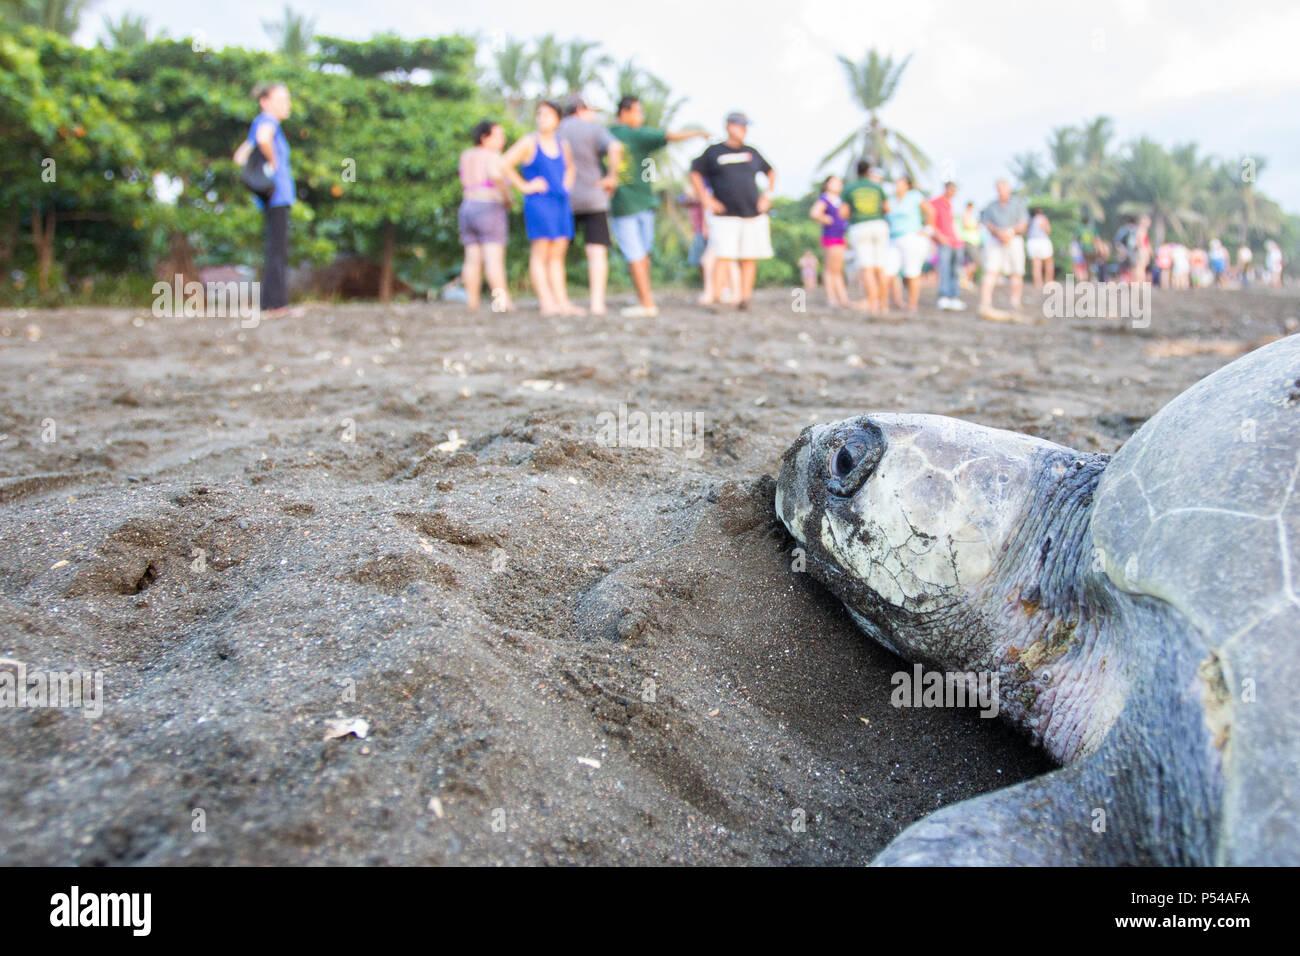 An olive ridley sea turtle (Lepidochelys olivacea) in a beach in Costa Rica where eco tourism takes place - Stock Image